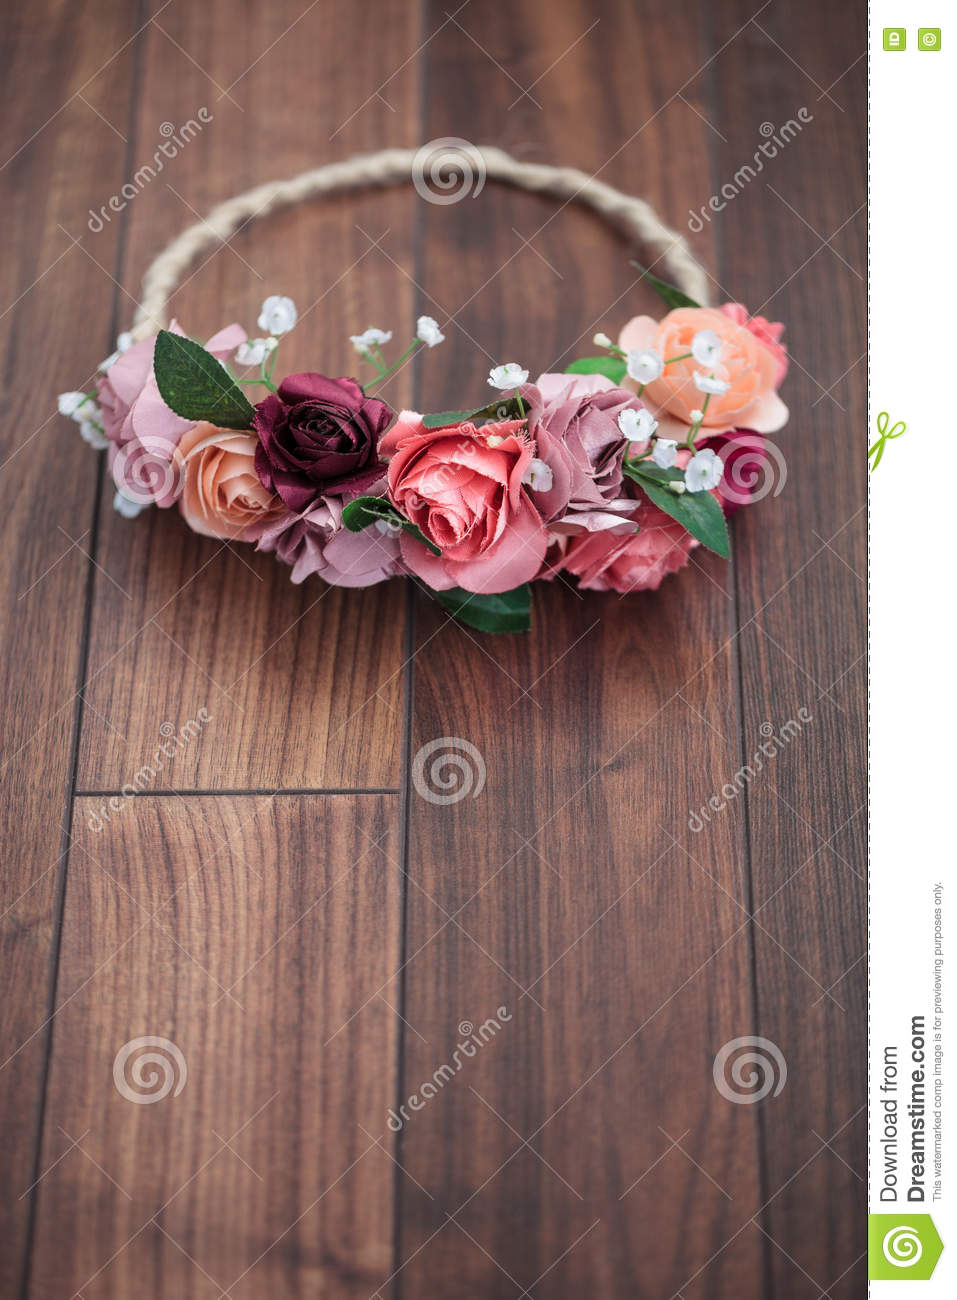 Pink Rose Flowers Wraith On Wooden Background Stock Photo Image Of